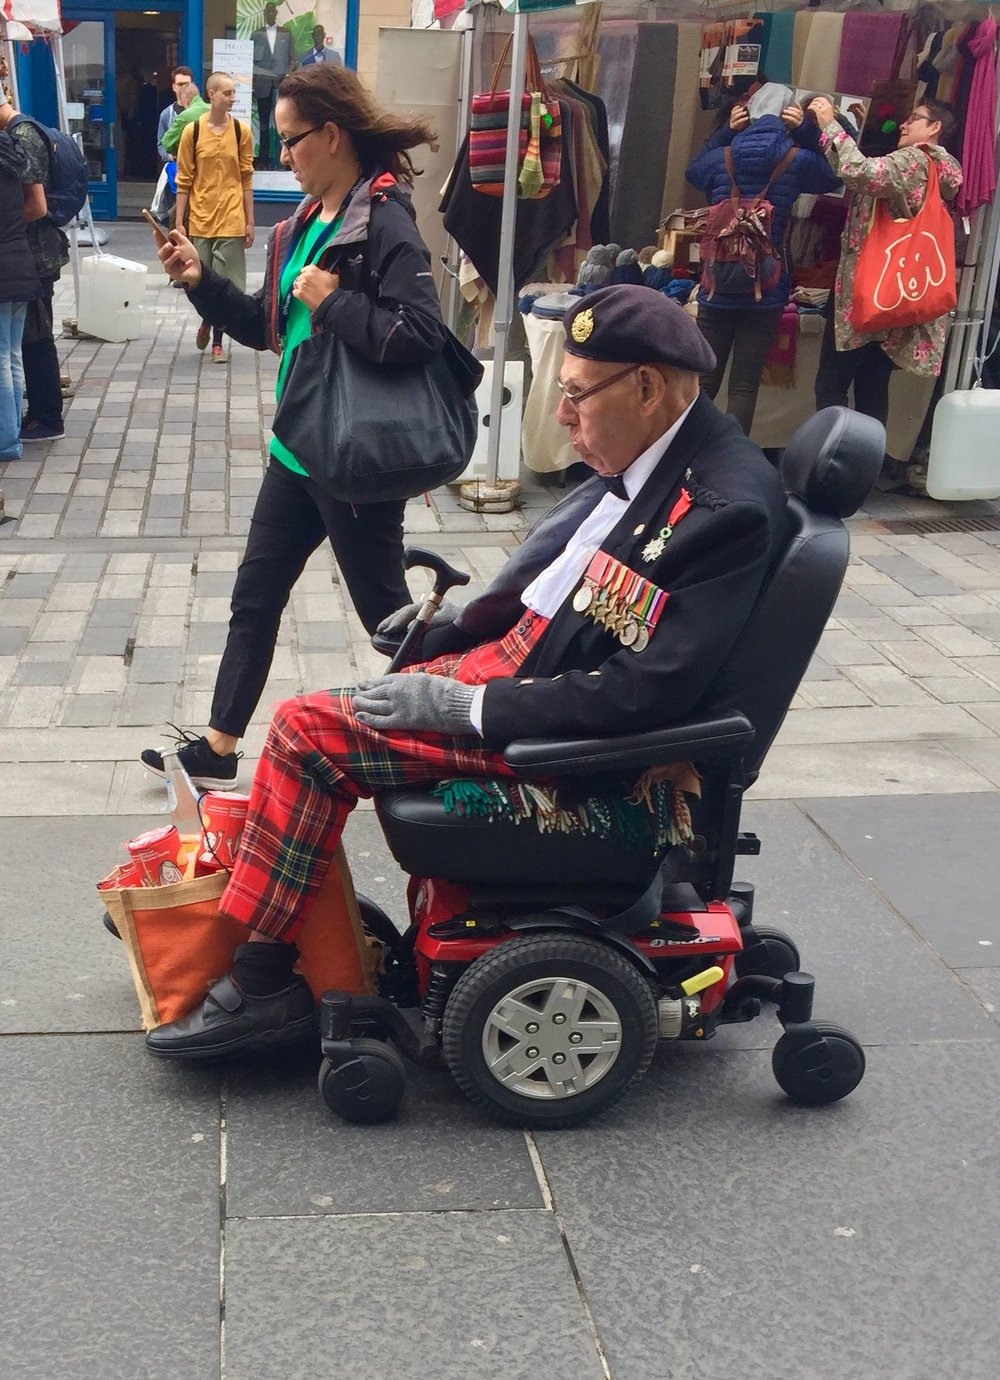 One of the many fine characters that passed me on Castle street today H had been to Sainsbury's I think looking at his full shopping bag :)